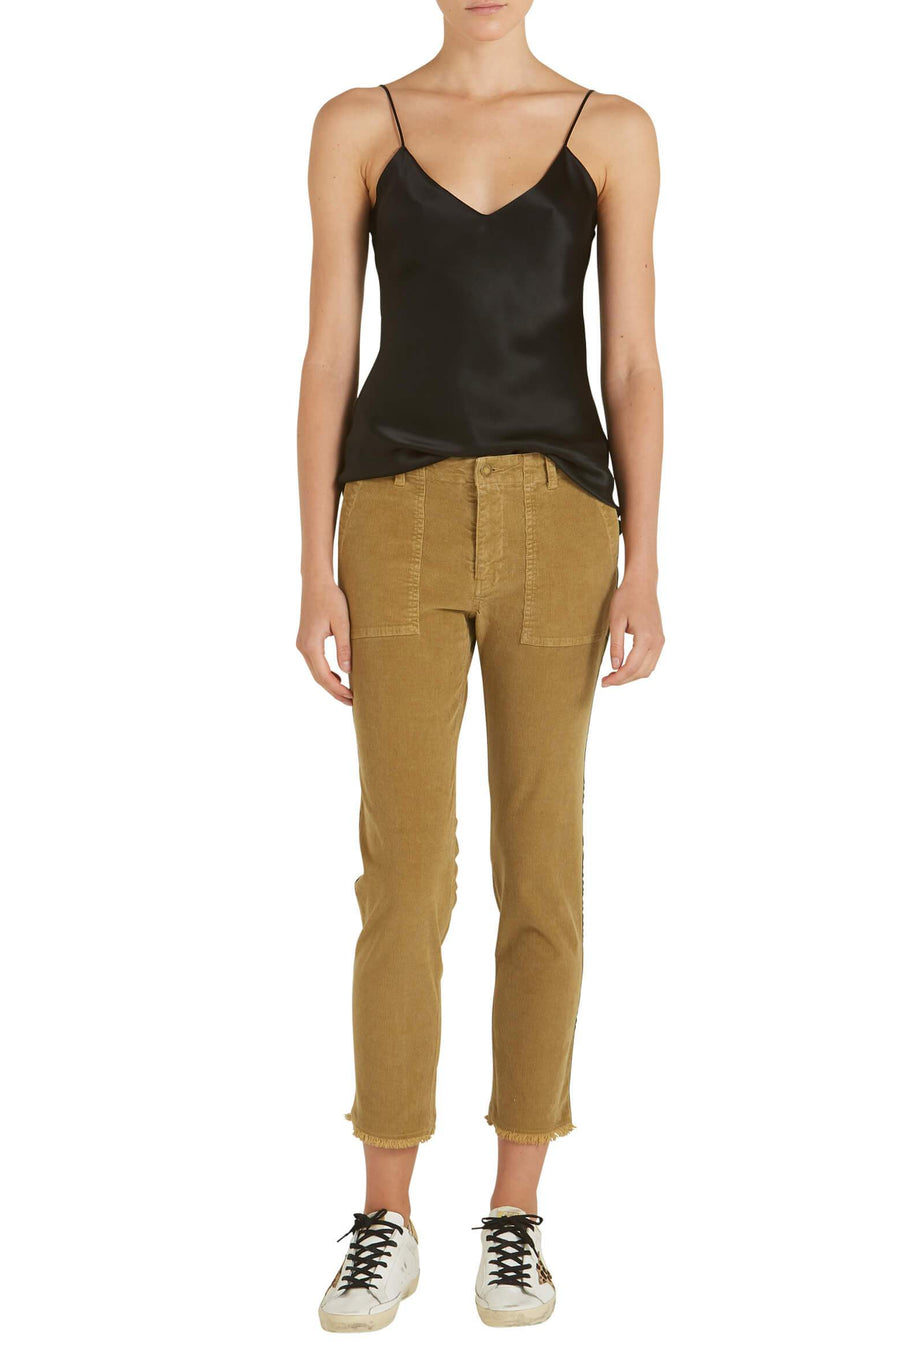 Nili Lotan Jenna Pant With Tape from The New Trend